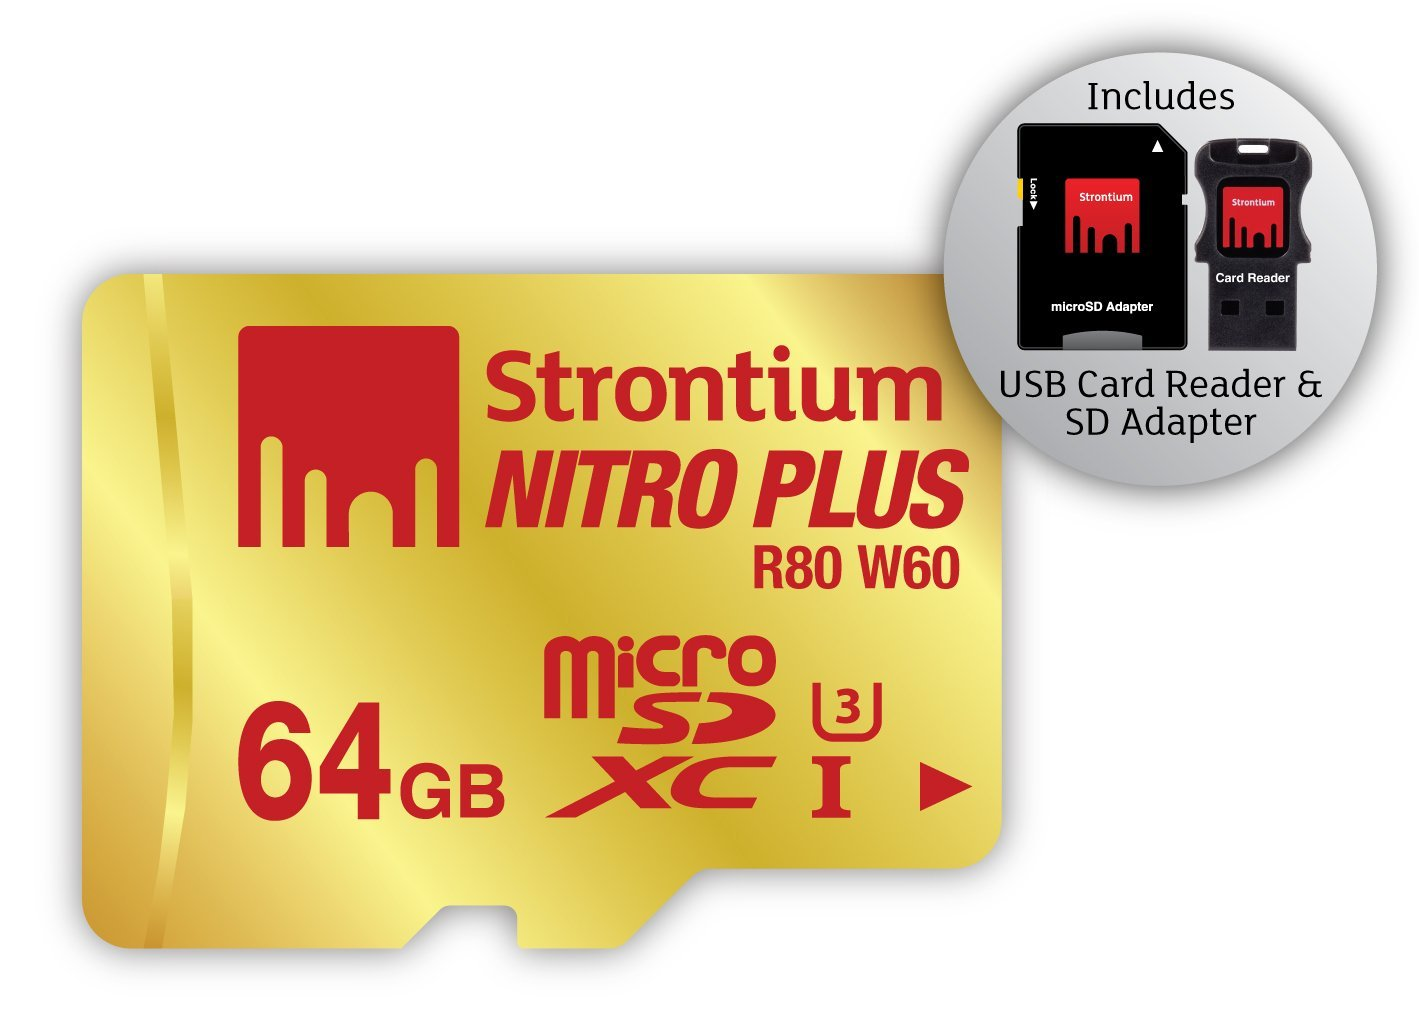 Top 10 Best Micro Sd Card With High Speed To Buy In 2018 Adaptor Memory Adapter Are Given Below Ultra Class 3 Specification Uhs 1 U3 For 4k Definition Standard